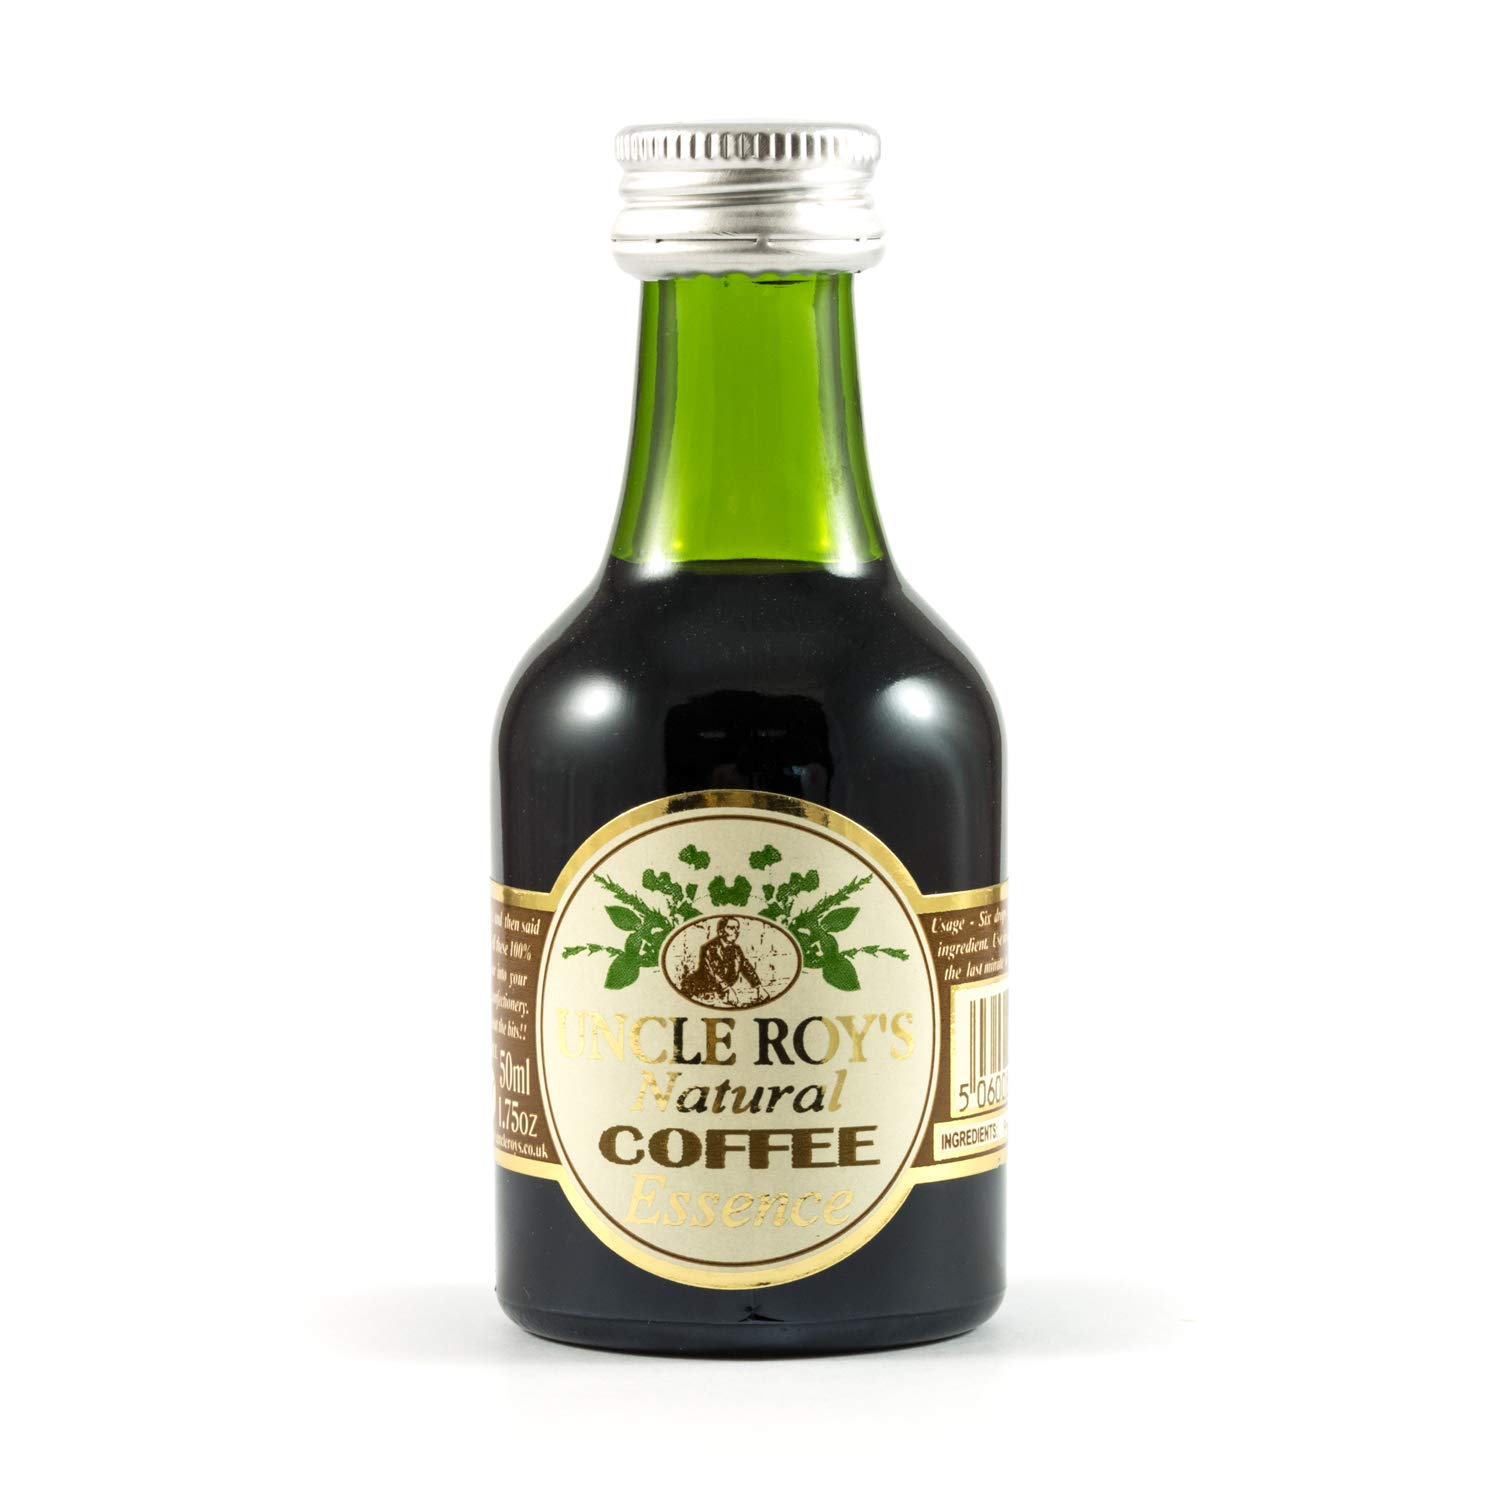 Coffee Concentrated Food Essence Catering Dimensione - 1litre 36fl.oz